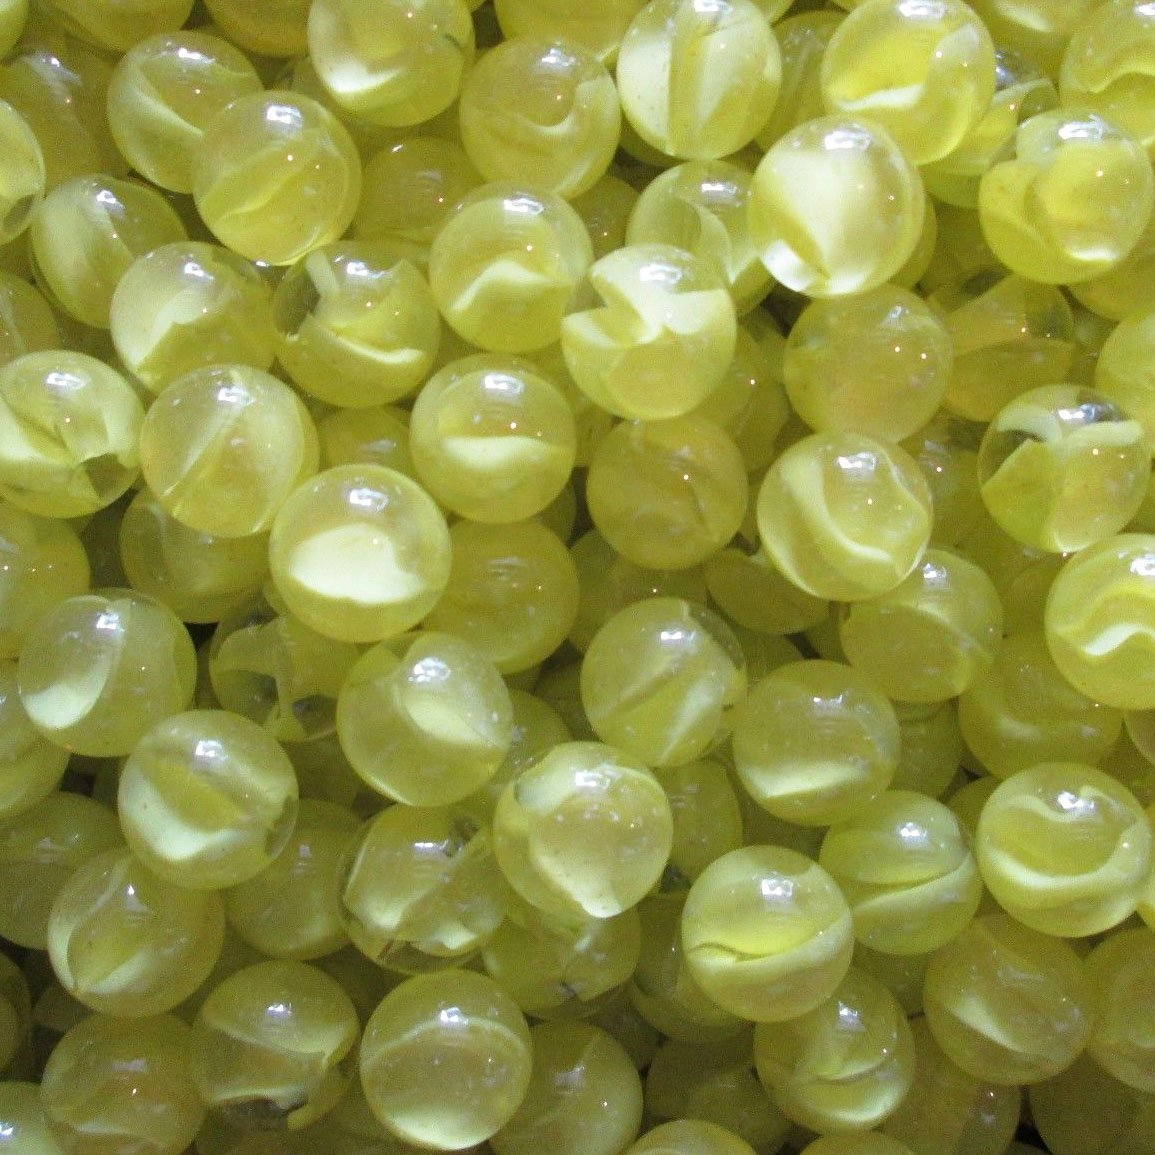 """Unique & Custom {3/4'' Inch} Approx 2 Pound Set of Big """"Round"""" Clear Marbles Made of Glass for Filling Vases, Games & Decor w/ Basic Shiny Lemonade Swirl Inner Cat's Eye Design [Yellow]"""